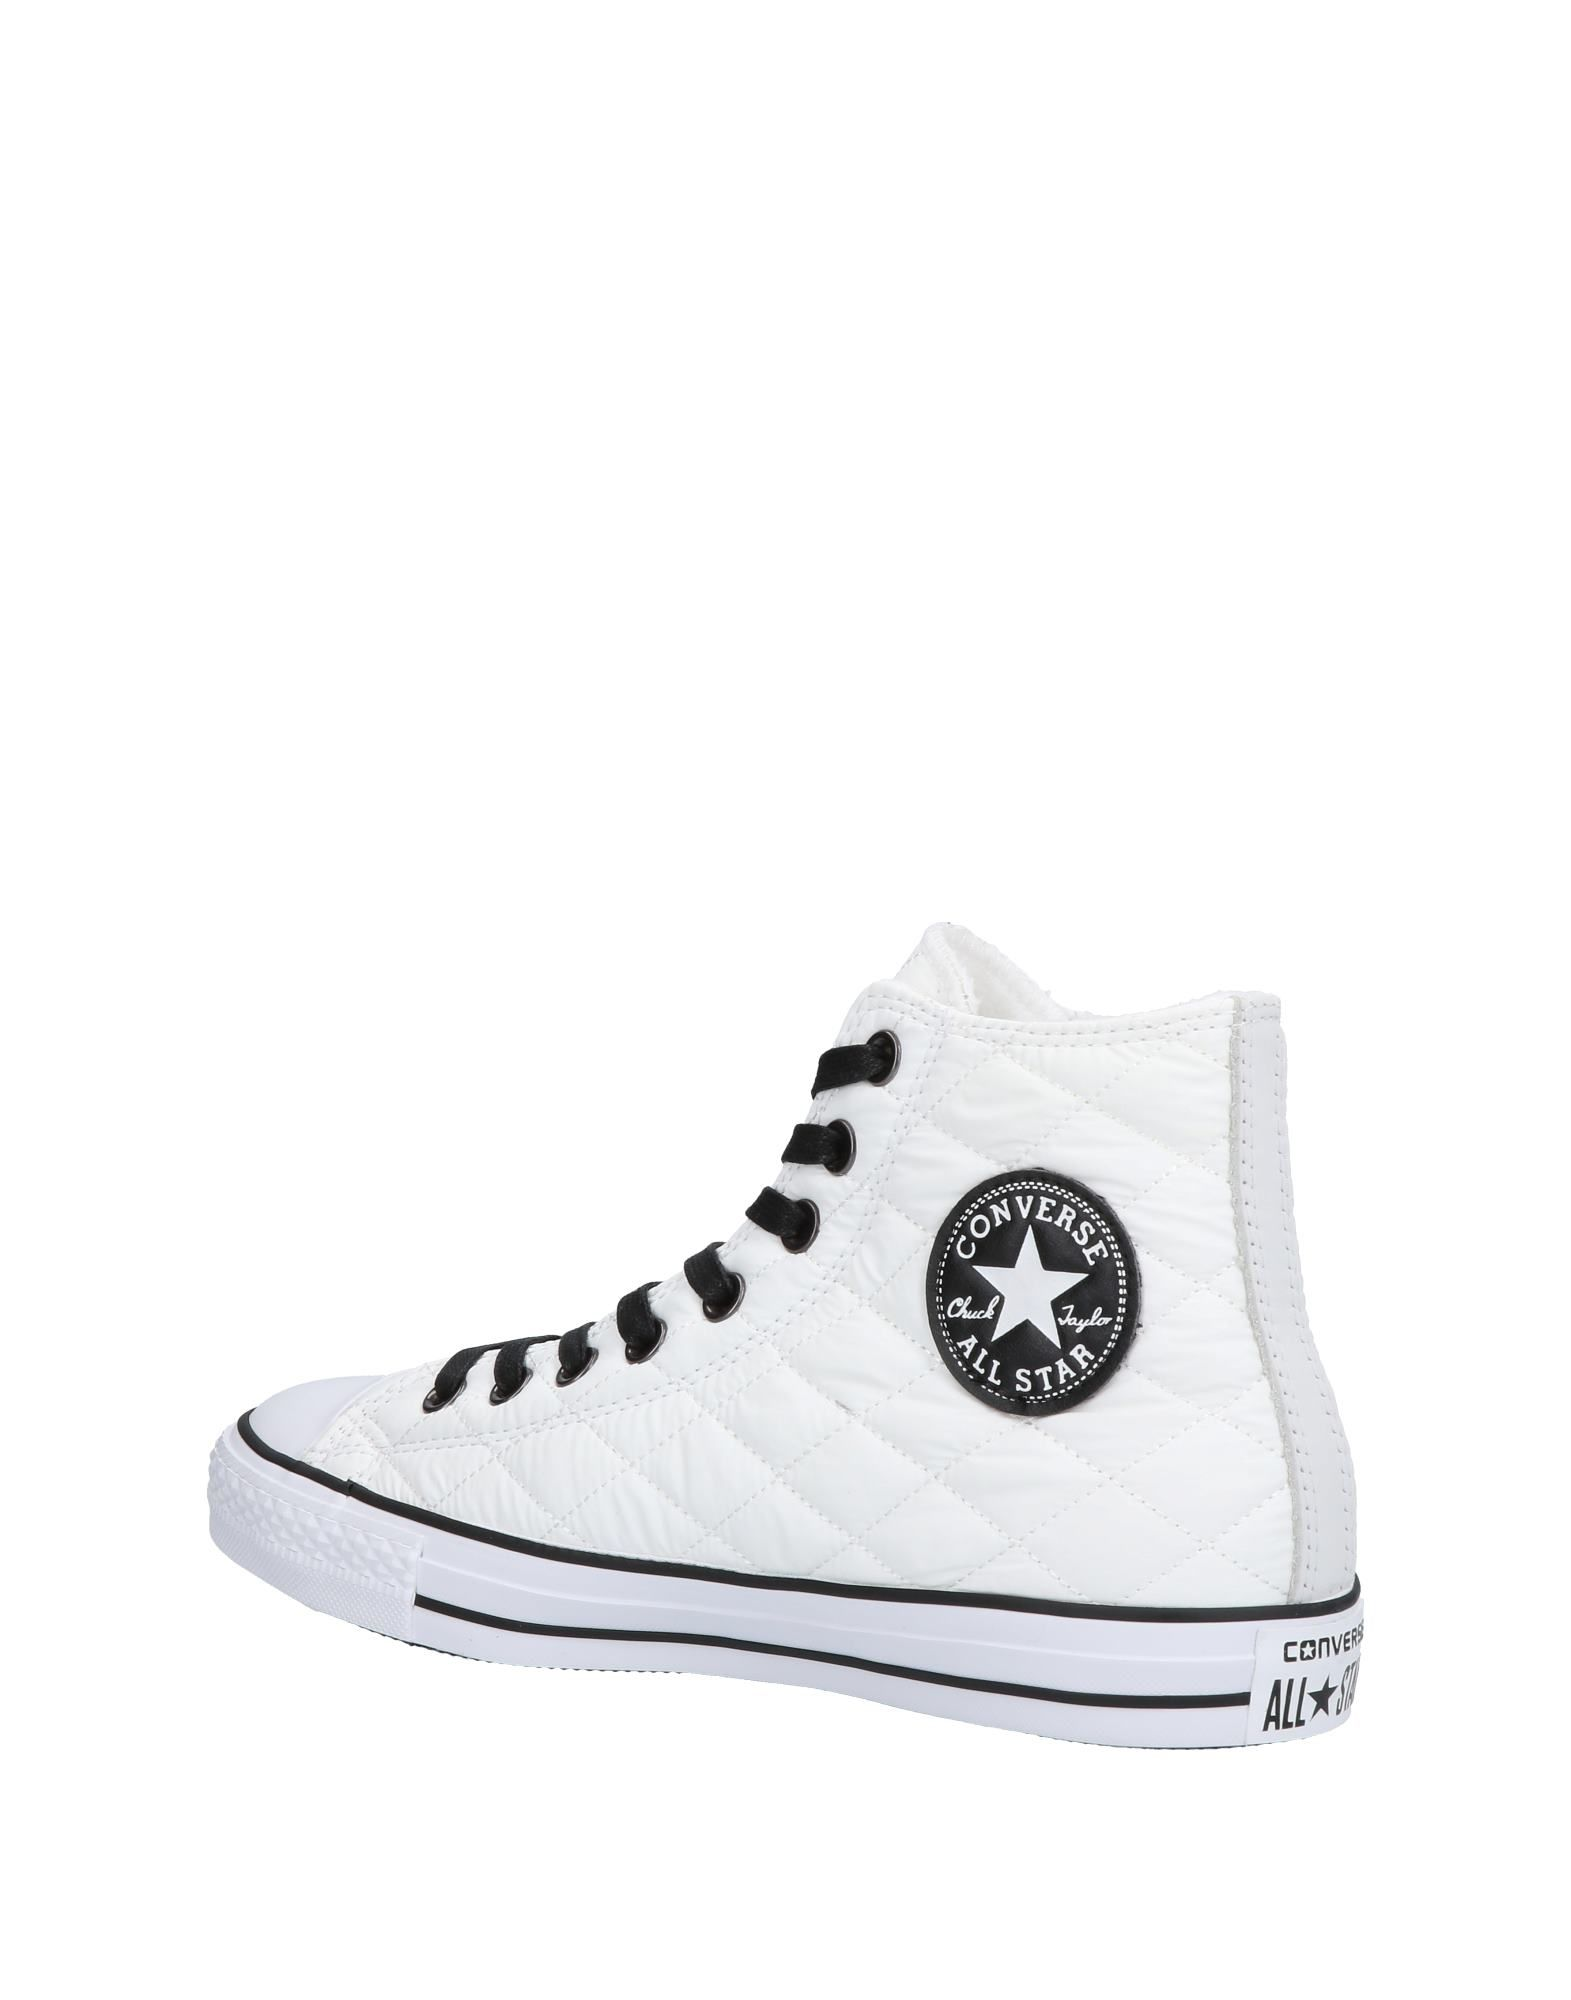 Sneakers Converse All Star Homme - Sneakers Converse All Star sur